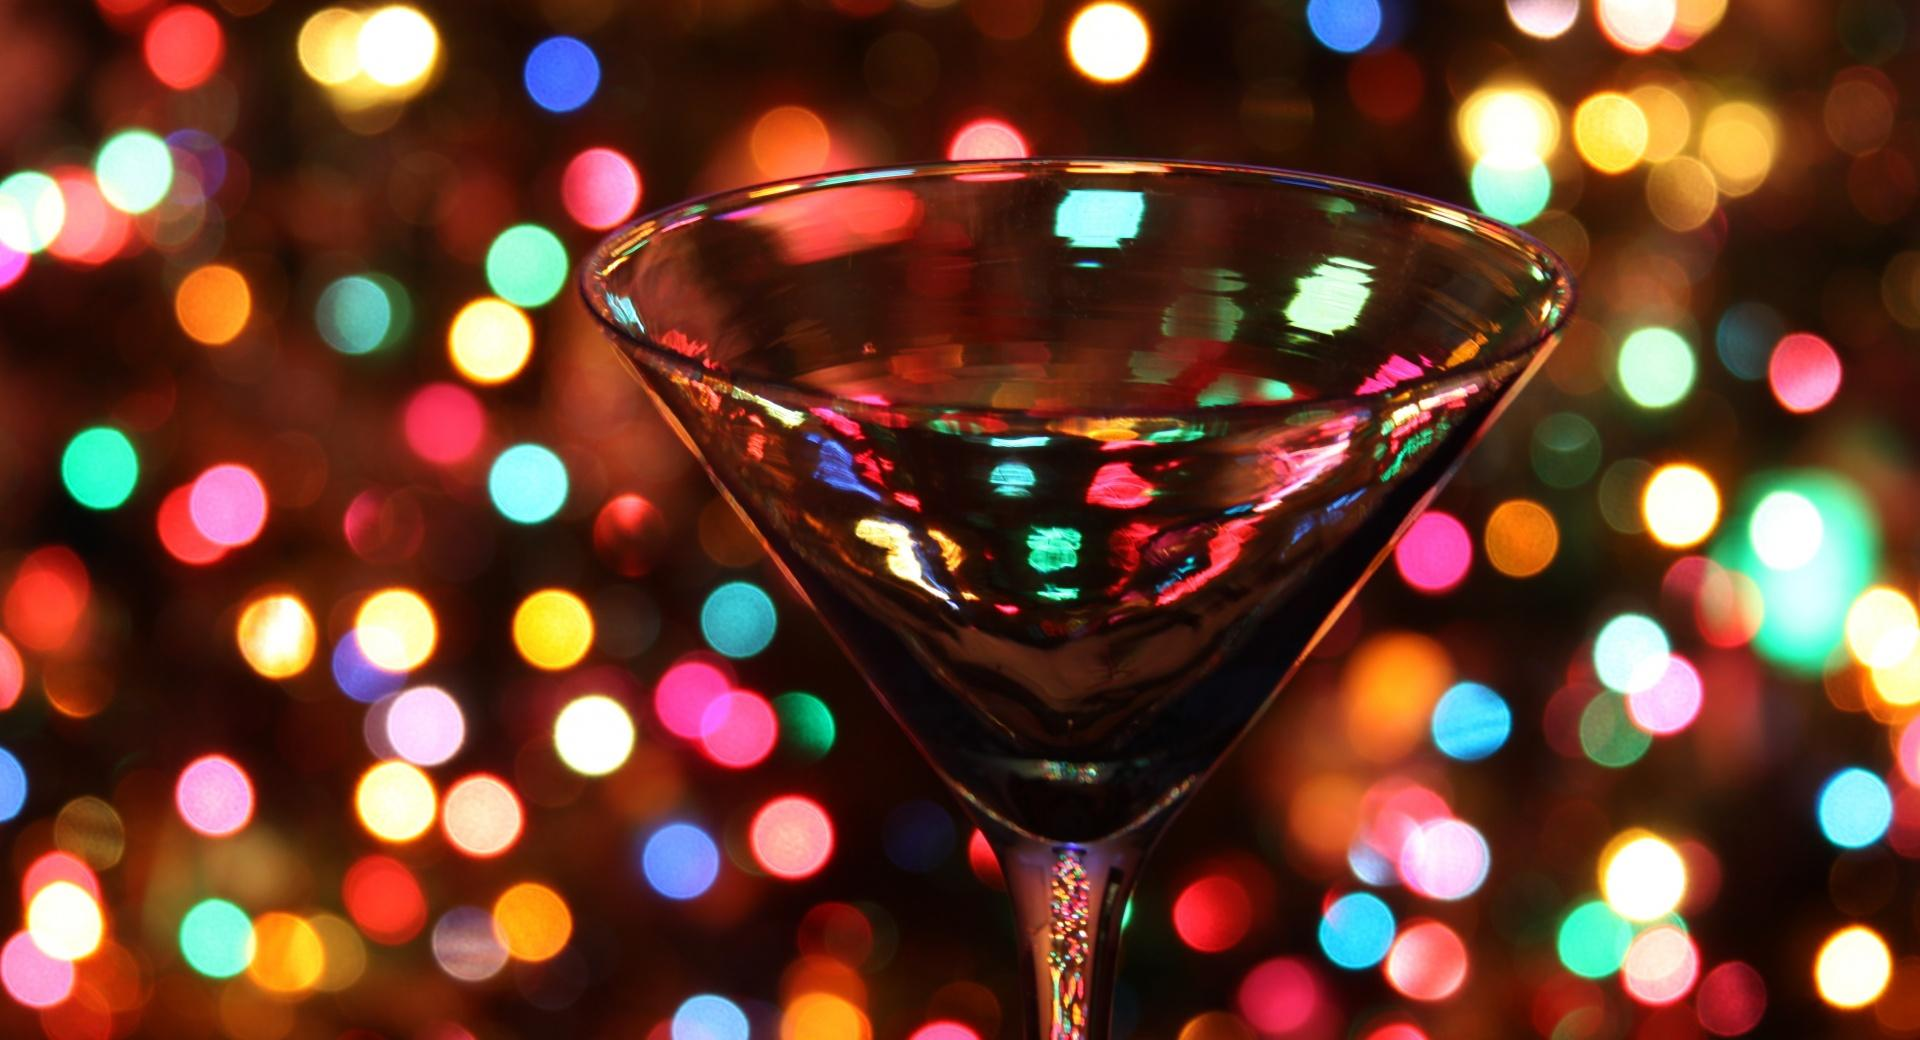 Christmas Through A Martini Glass wallpapers HD quality